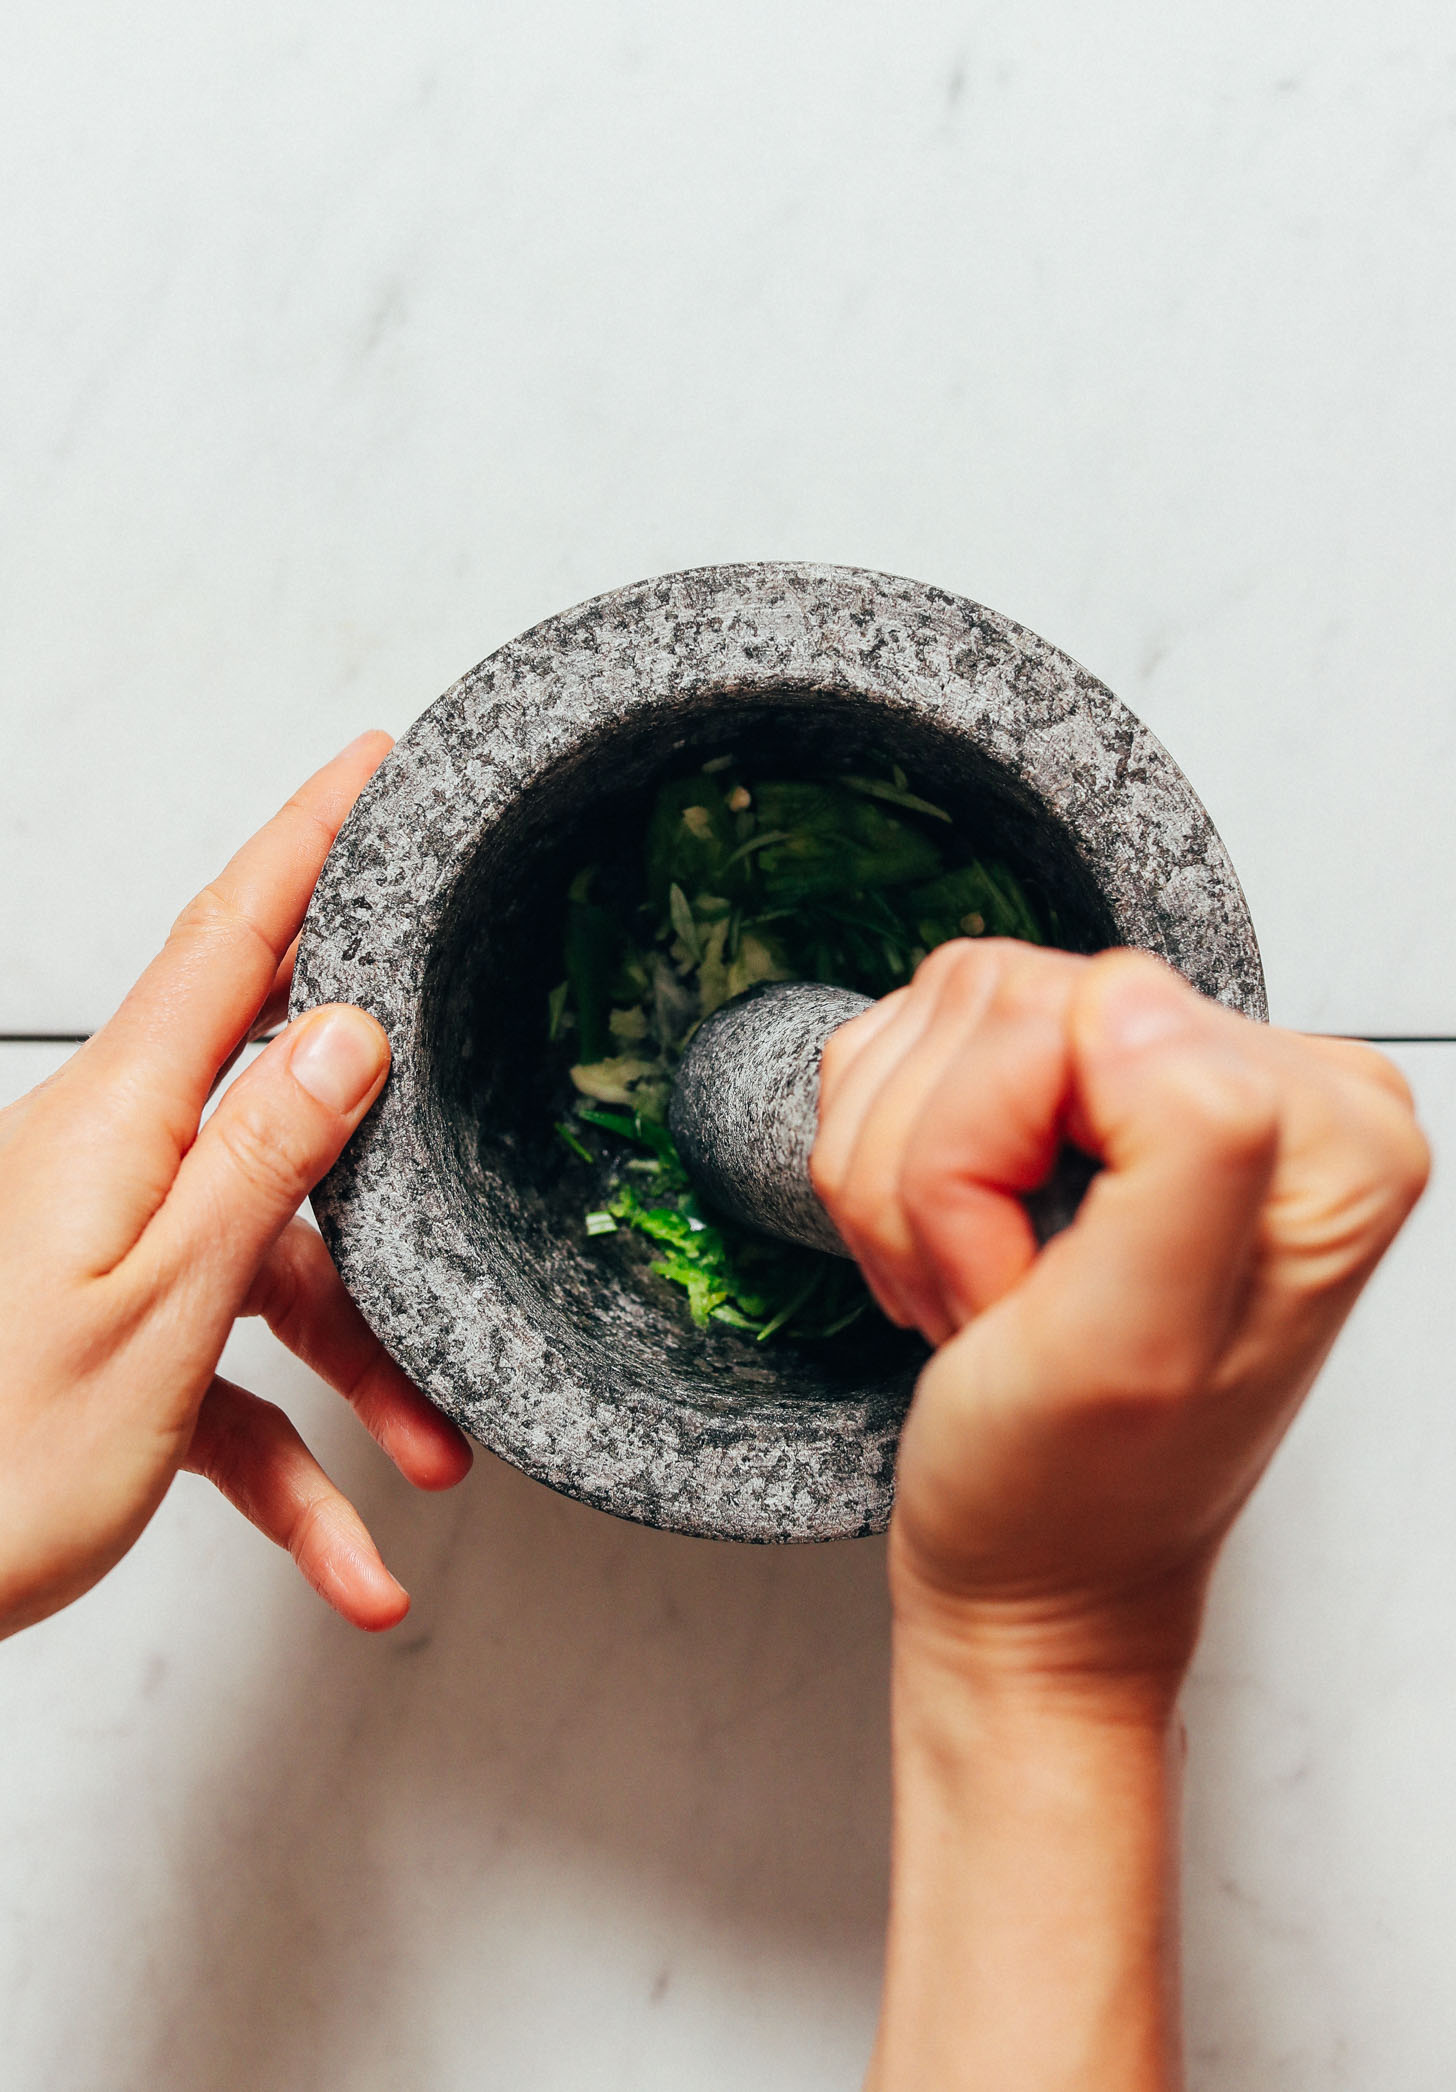 Using a mortar and pestle to crush serrano and garlic for our Rosemary Guacamole recipe